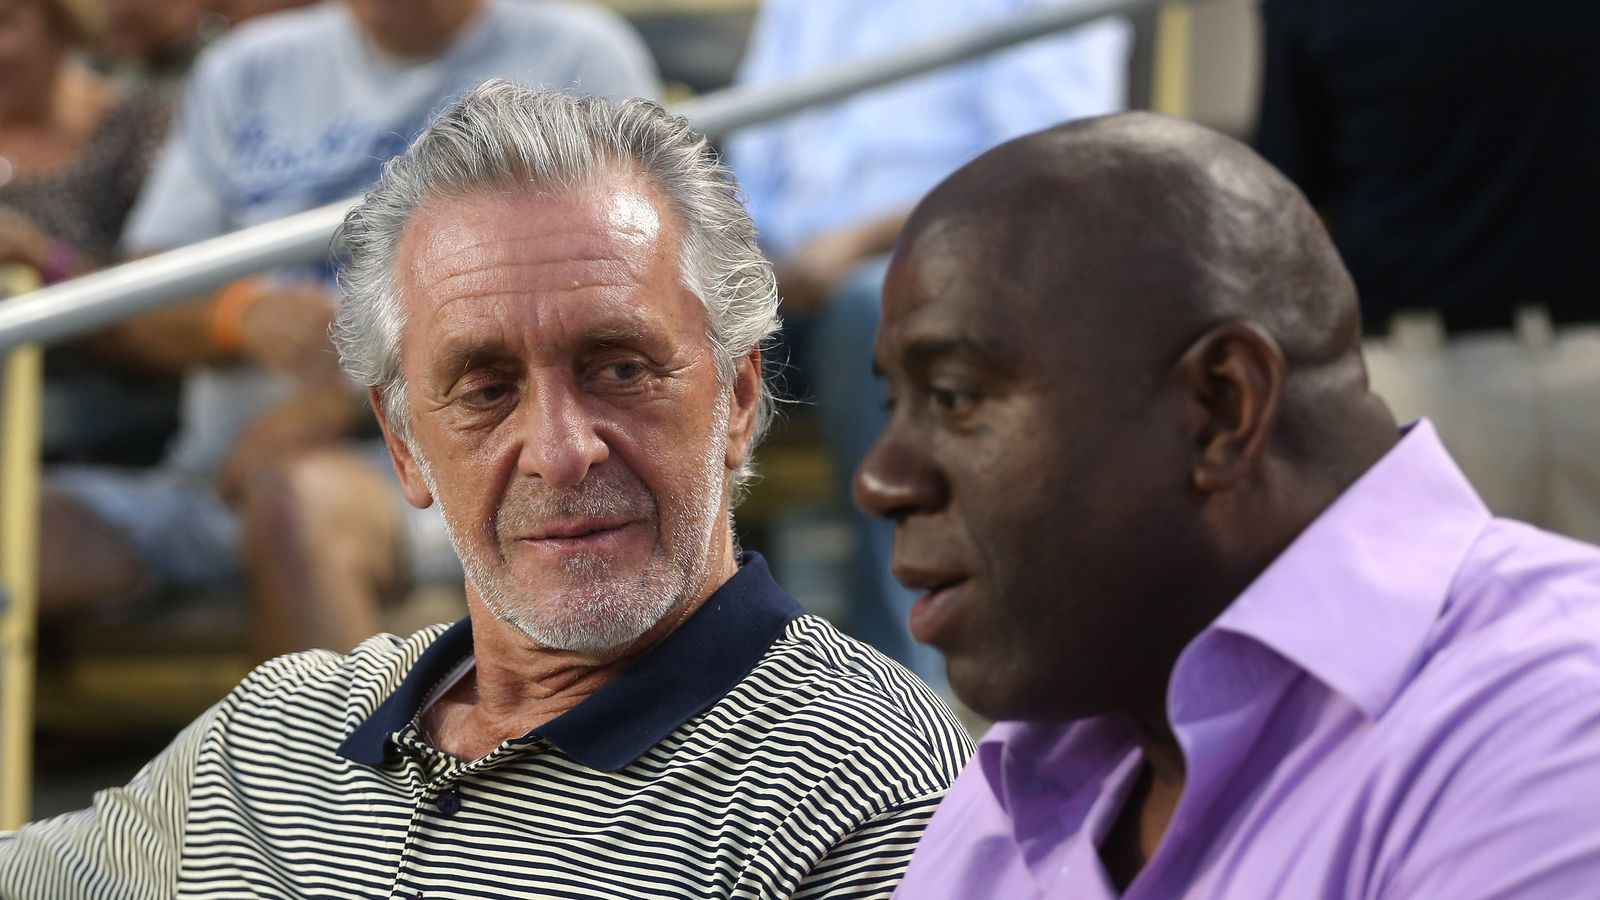 Lakers News: Pat Riley calls Magic Johnson 'the greatest player of all-time' - Silver Screen and ...